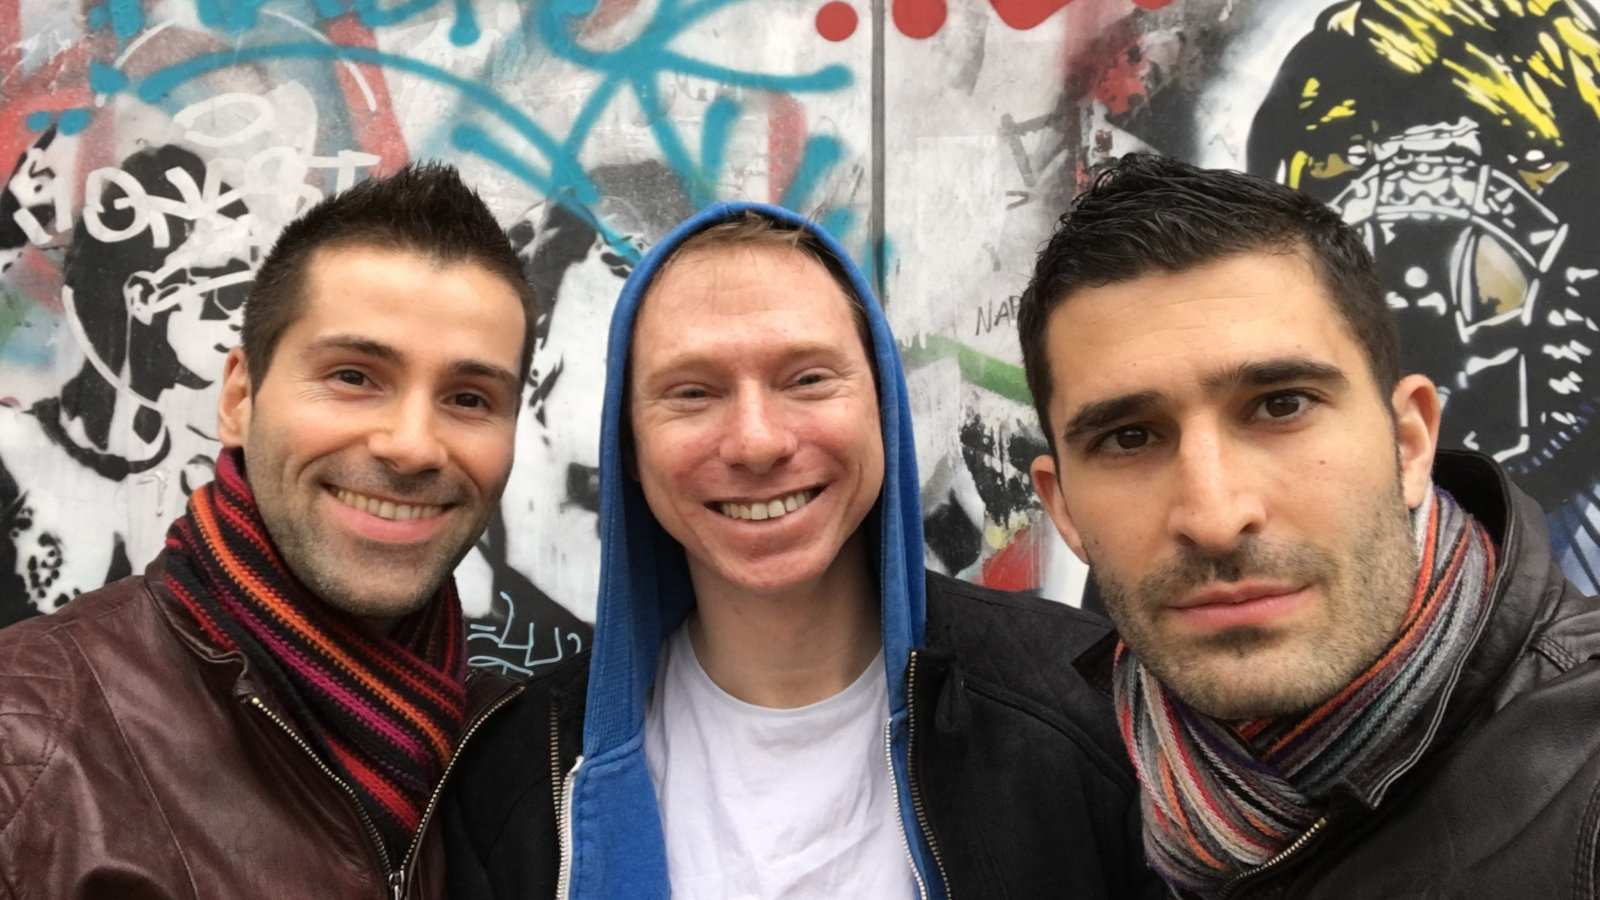 If you want to do a tour of Berlin's main attractions with a friendly gay guide, you can with Gaily tours